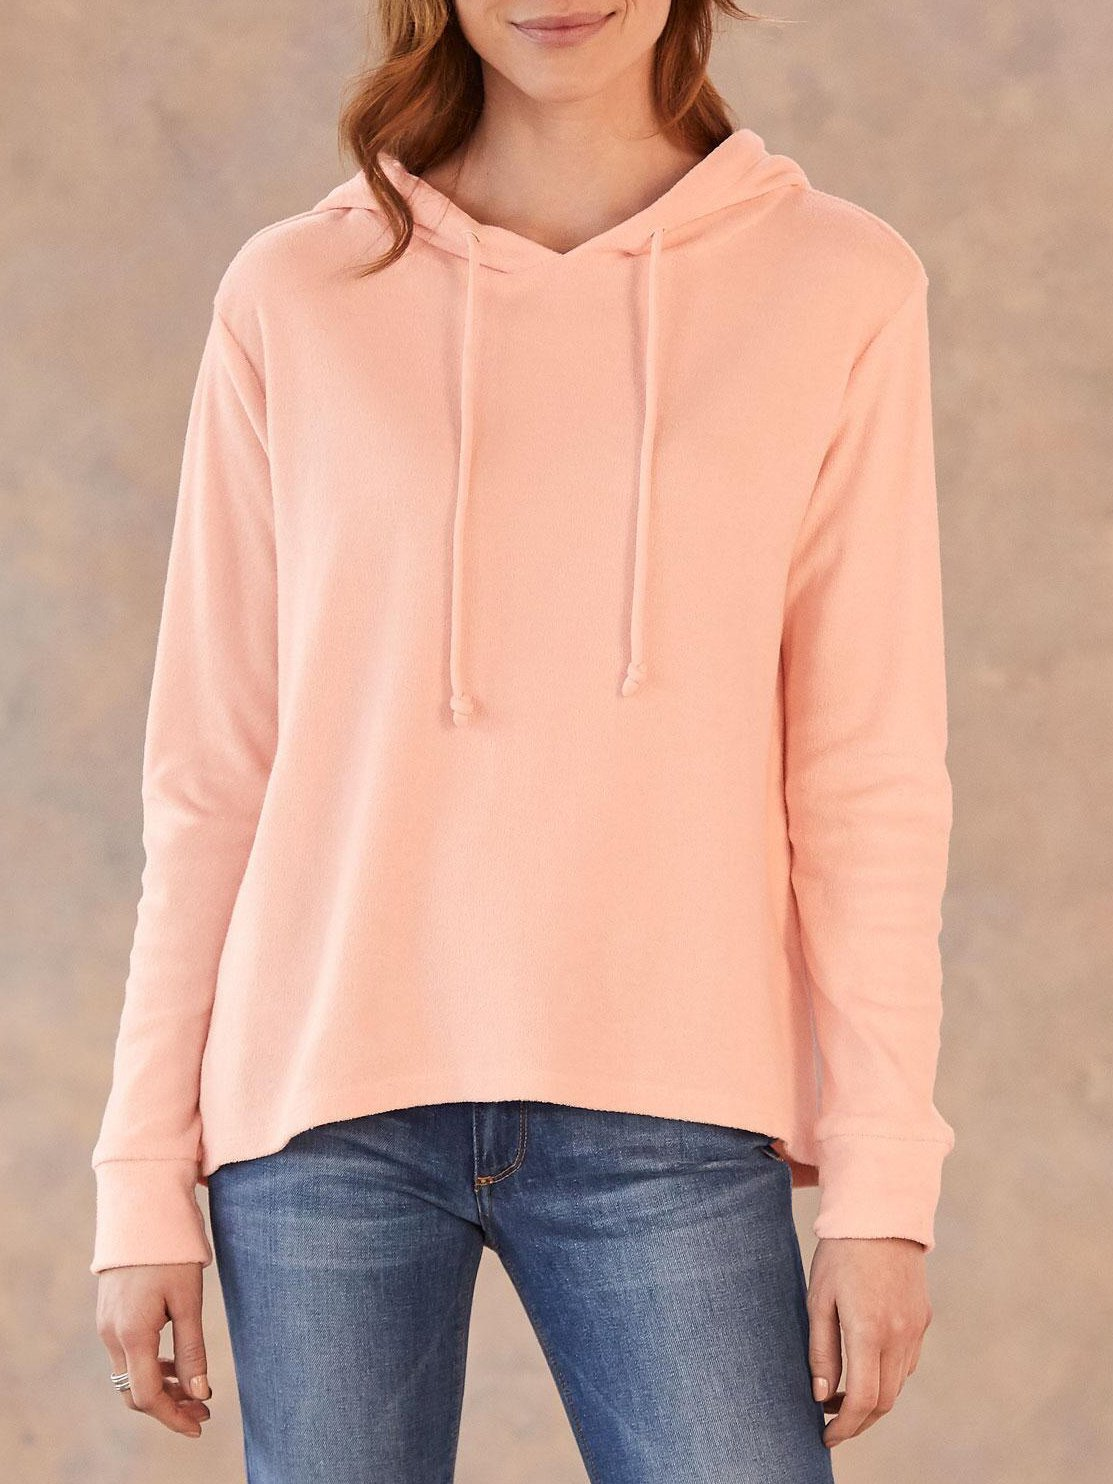 Daily plain loose hoodie with hat